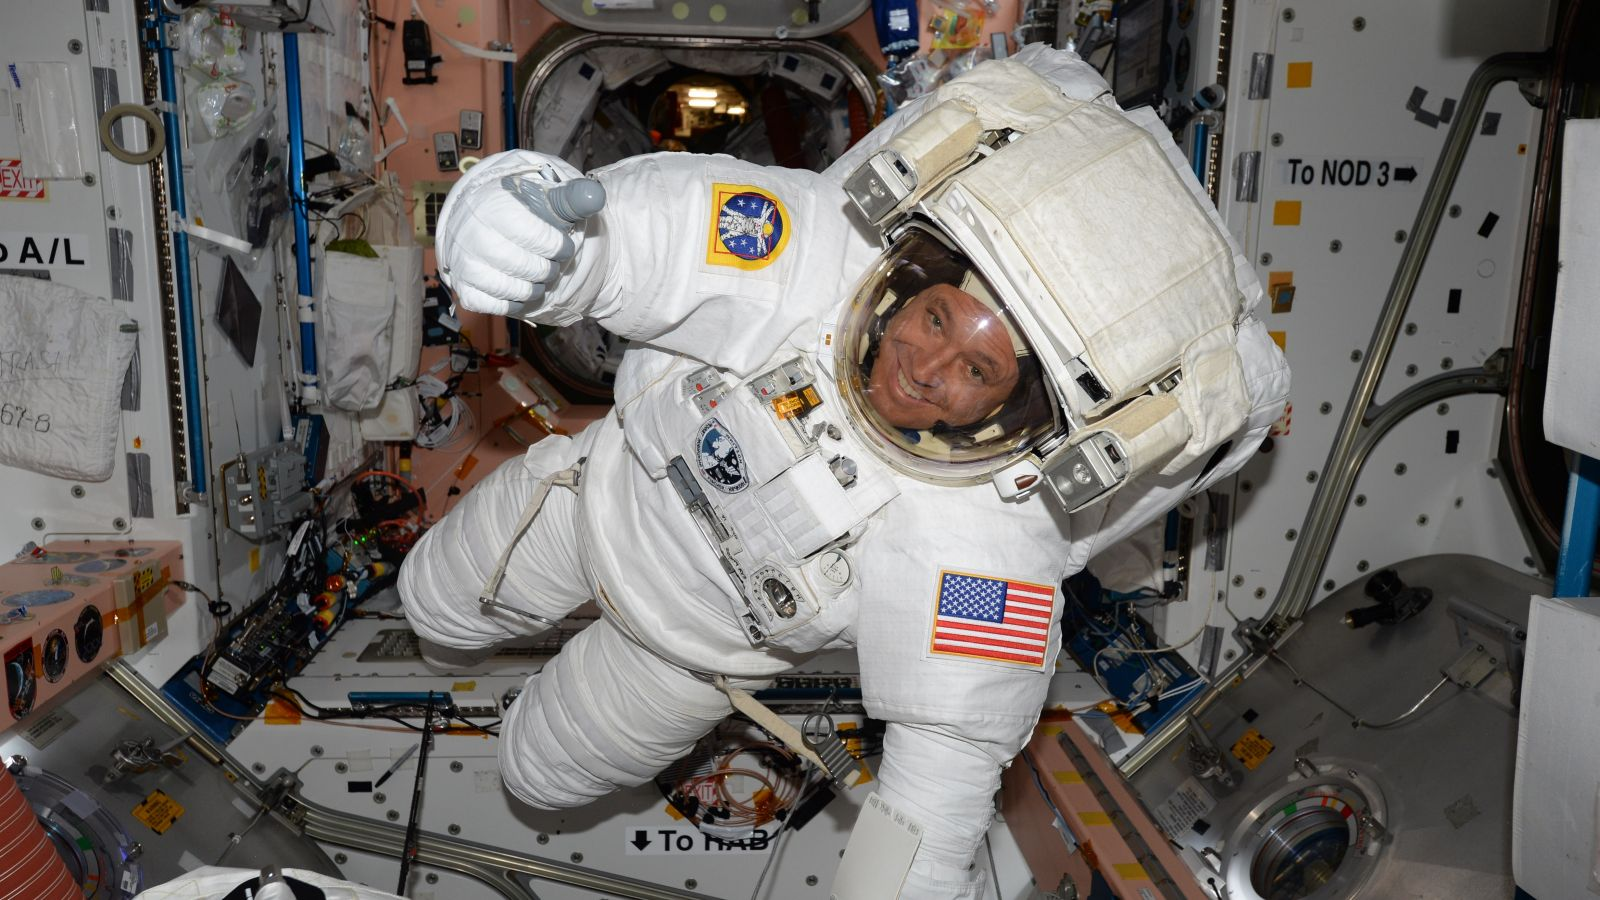 200th spacewalk starts with a glitch, then ends up making history